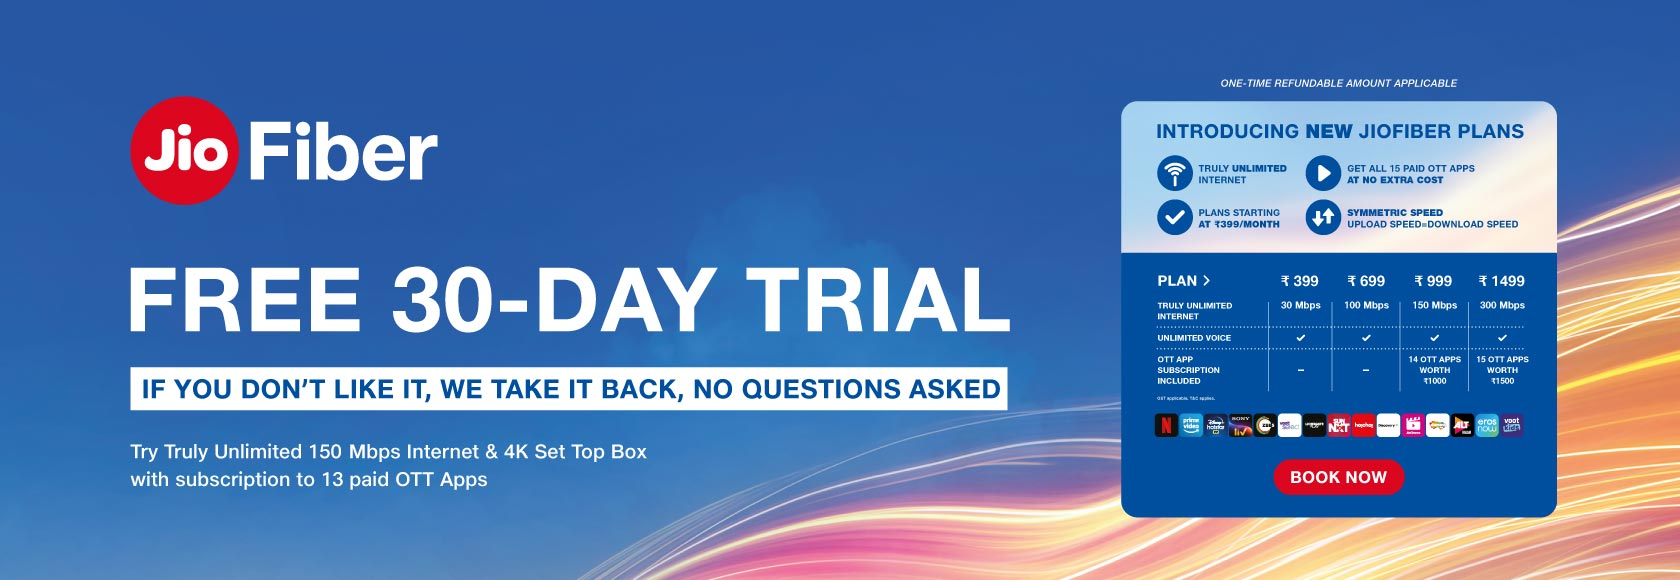 JioFiber - Free 30-Day Trial